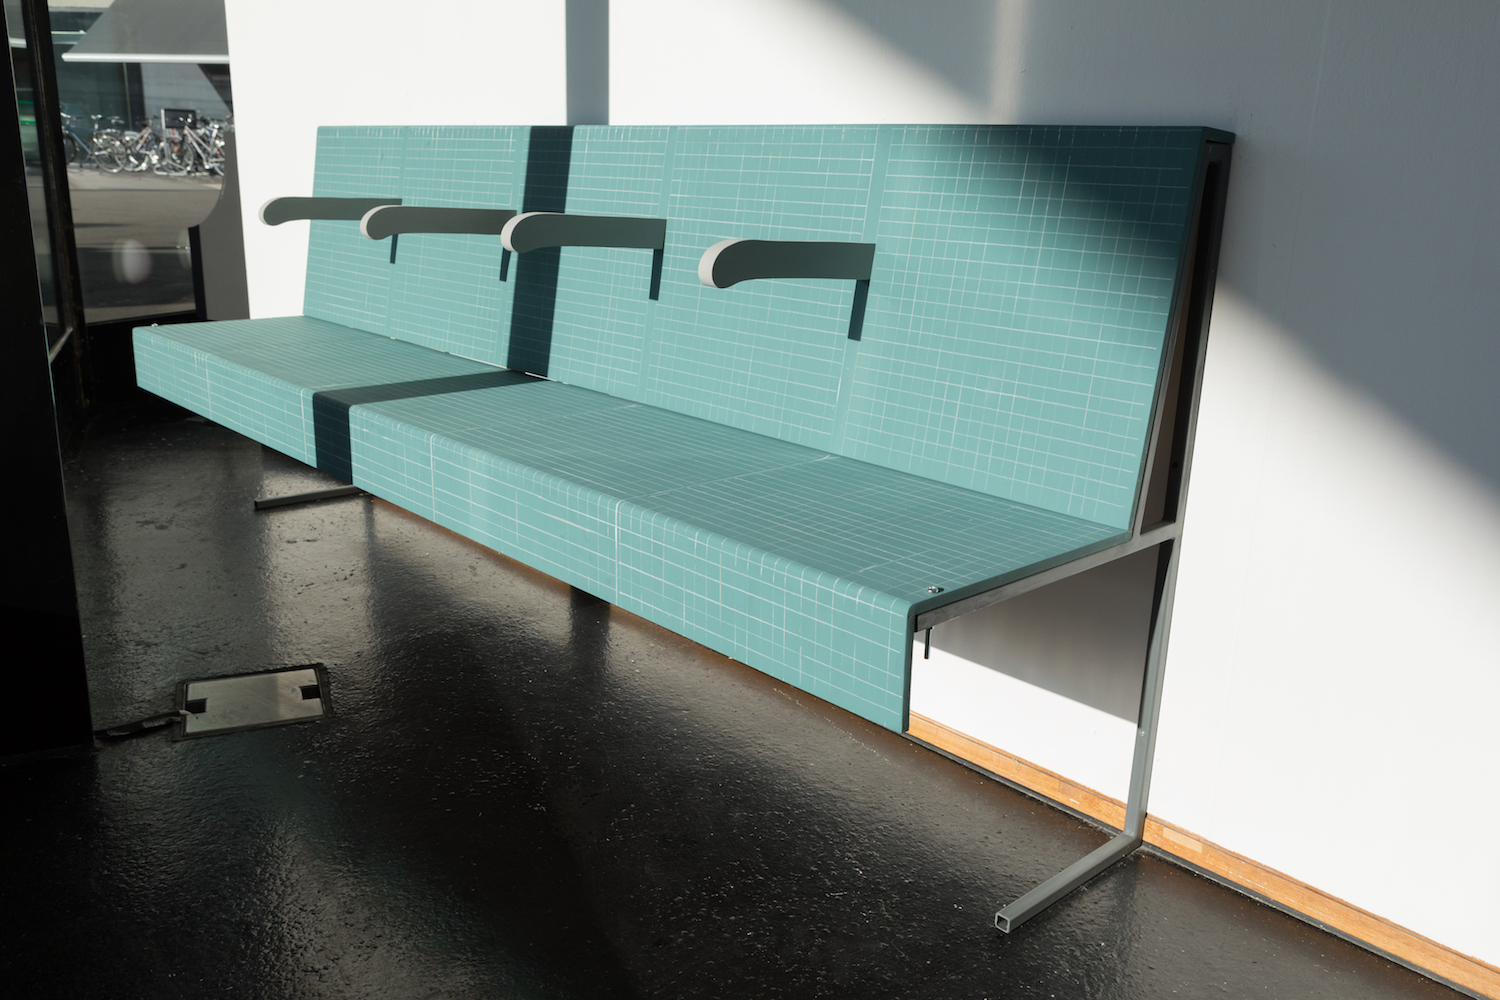 Milly Peck, Moquette, 2020. Emulsion on wood, painted steel, coloured pencil, bolts. 91 x 225 x 53 cm.